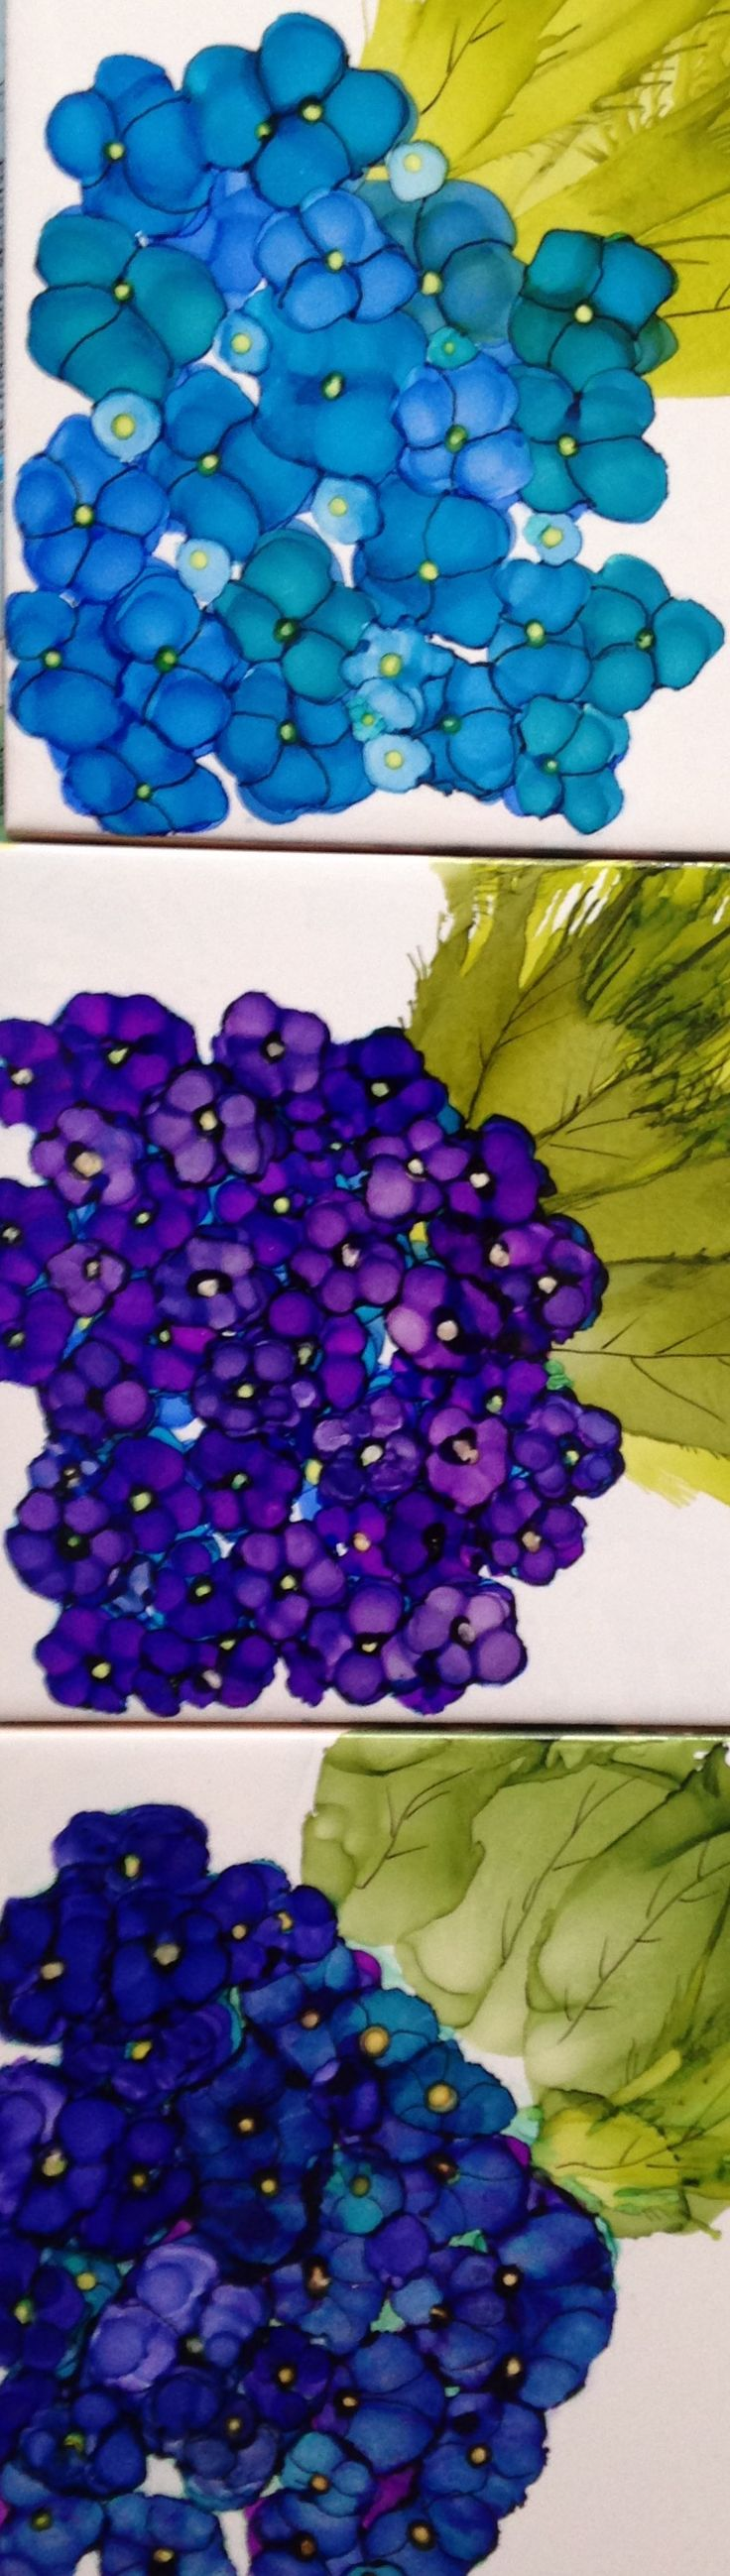 Hydrangea experiments. Layering alcohol inks on tile by Lin Crocco